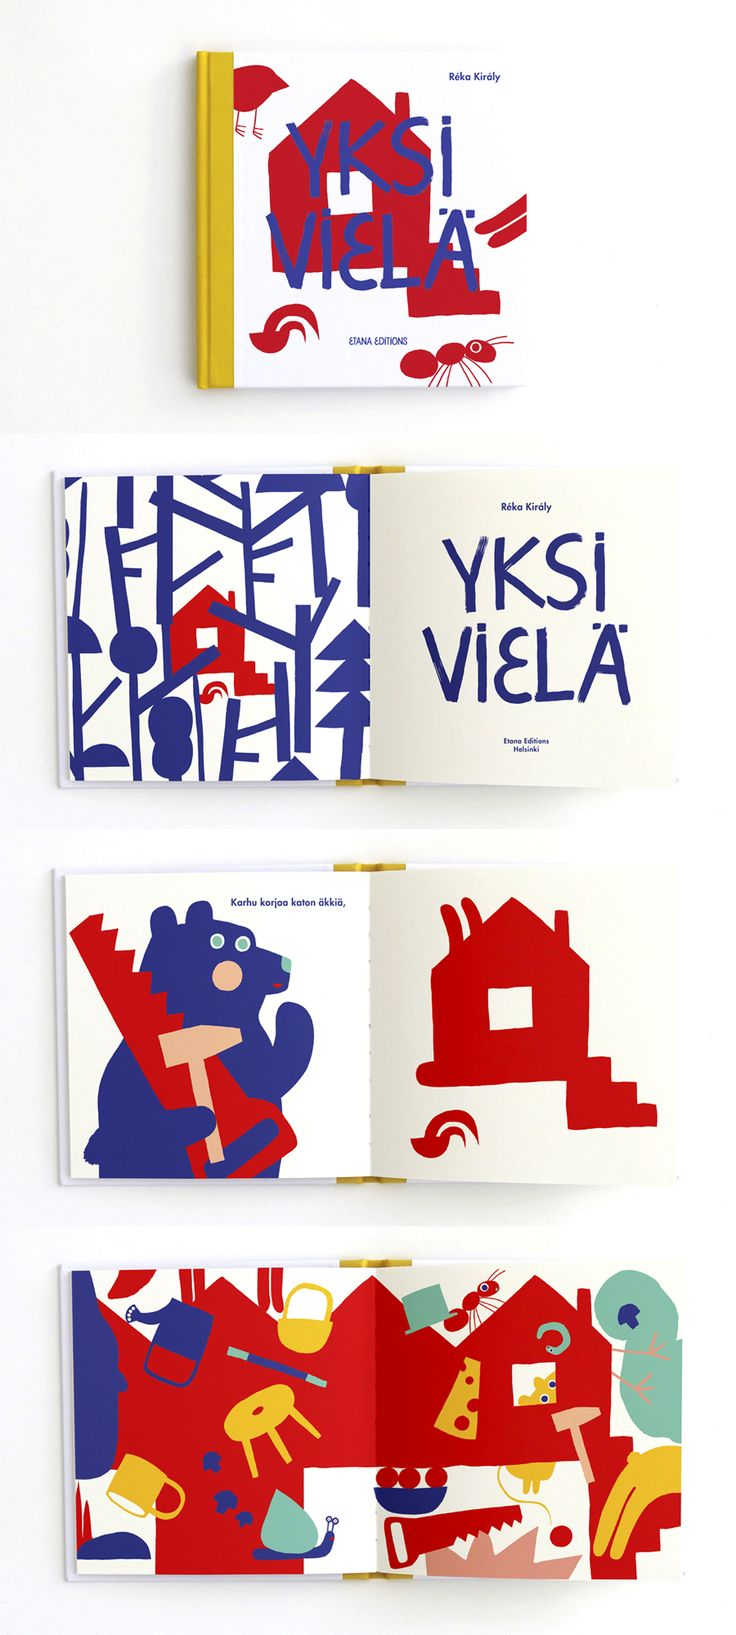 Yksi vielä = One more by Reka Kiraly  Da-da spirited children's book at the moment available only in Finnish.